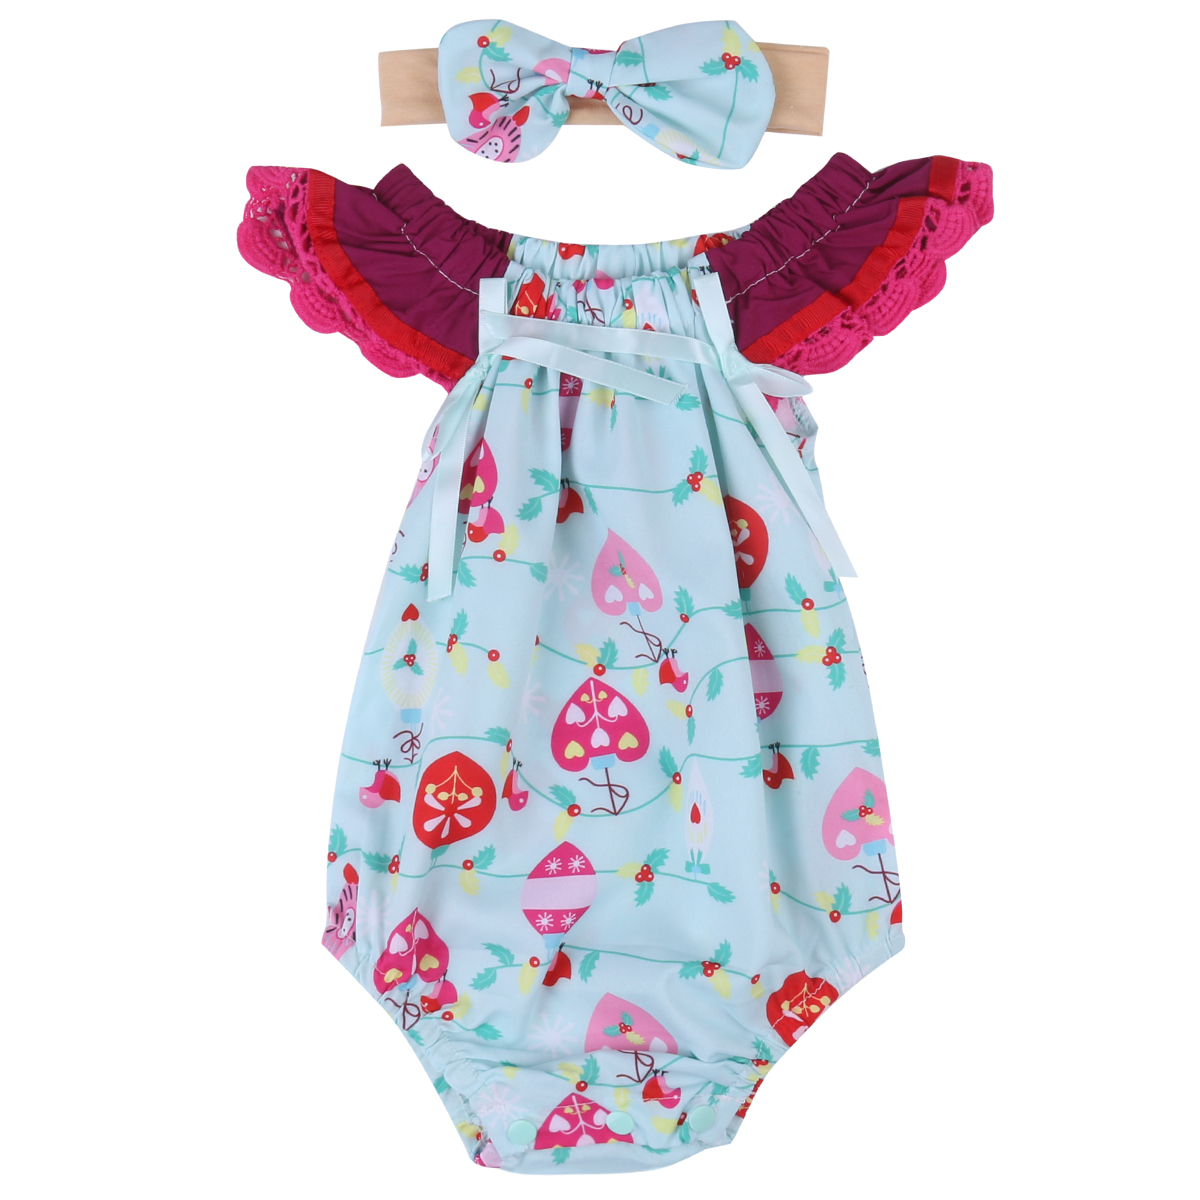 d76d81af5 2017 New Cute Newborn Baby Girl Floral Romper Clothes Infant Bebes Lace  Jumpsuit Sunsuit and Headband 2PCS Outfit Clothing Set - Best Kids Clothing  Stores ...